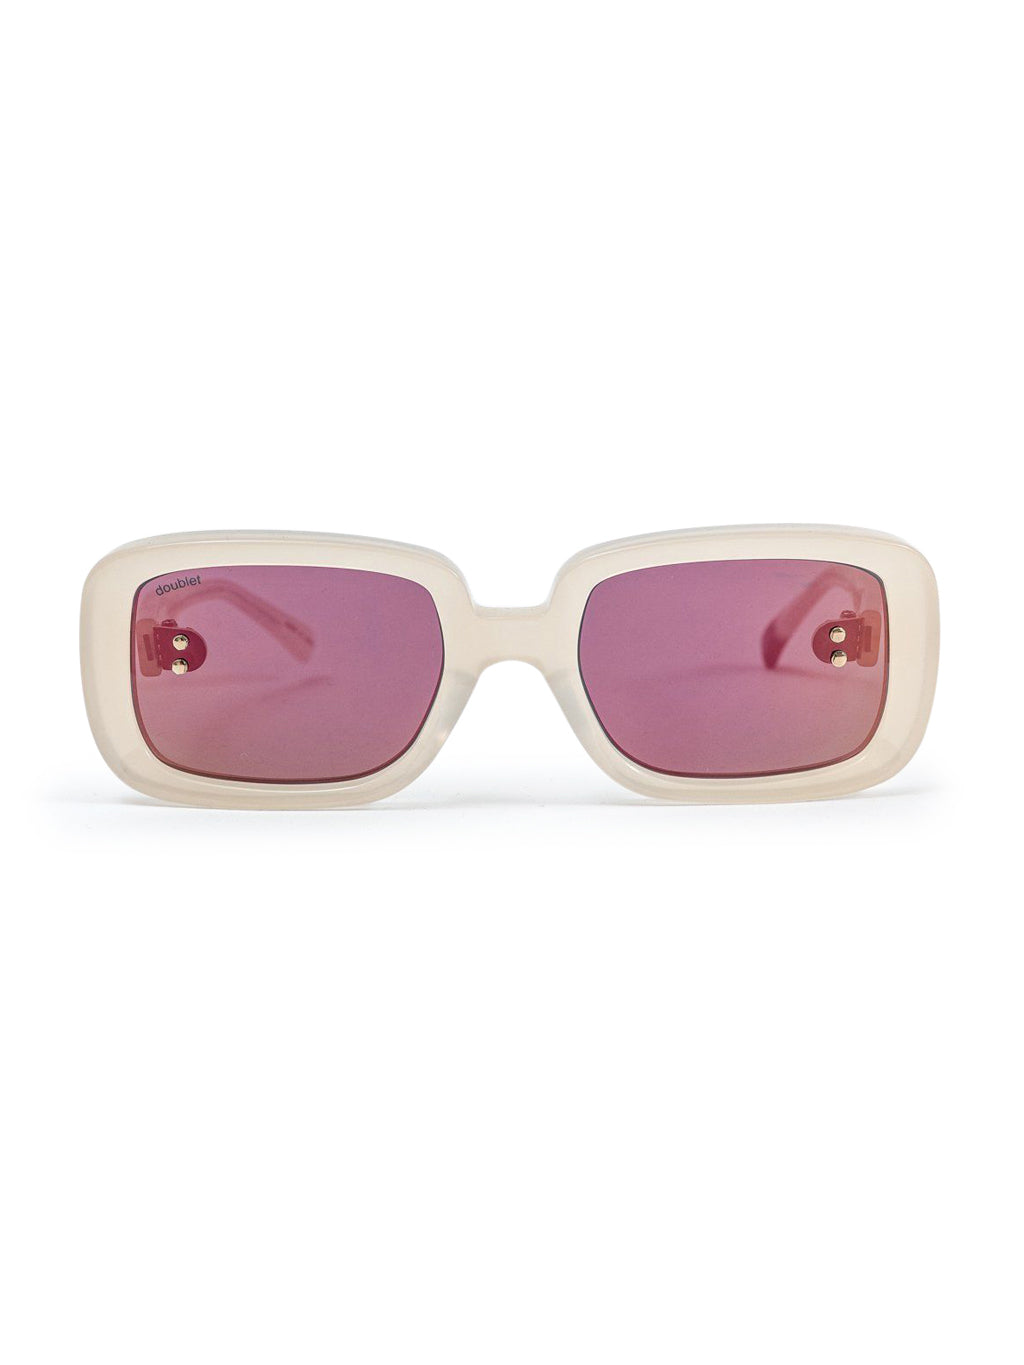 White Square Flame Sunglasses